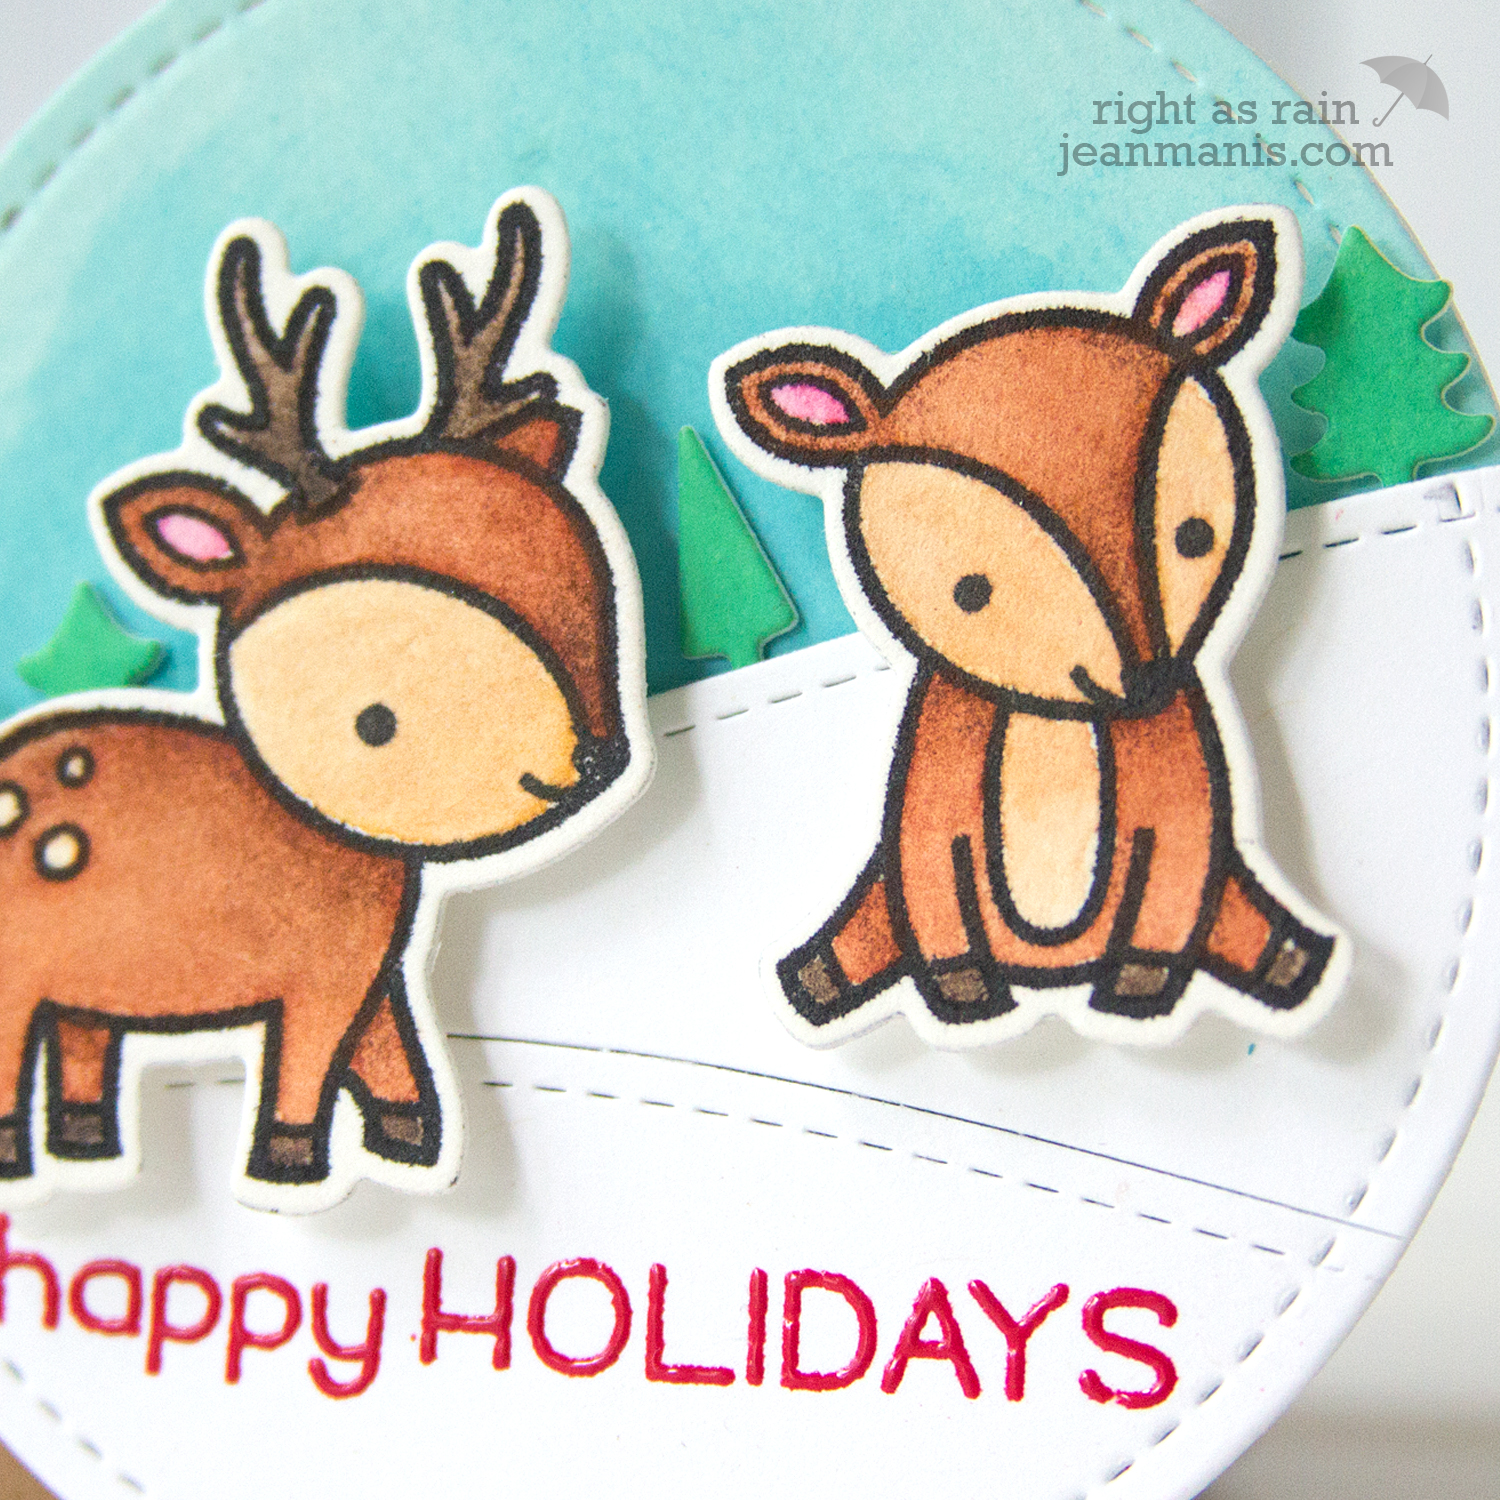 The 25 Days of Christmas Tags 2017 - Day 12 Lawn Fawn